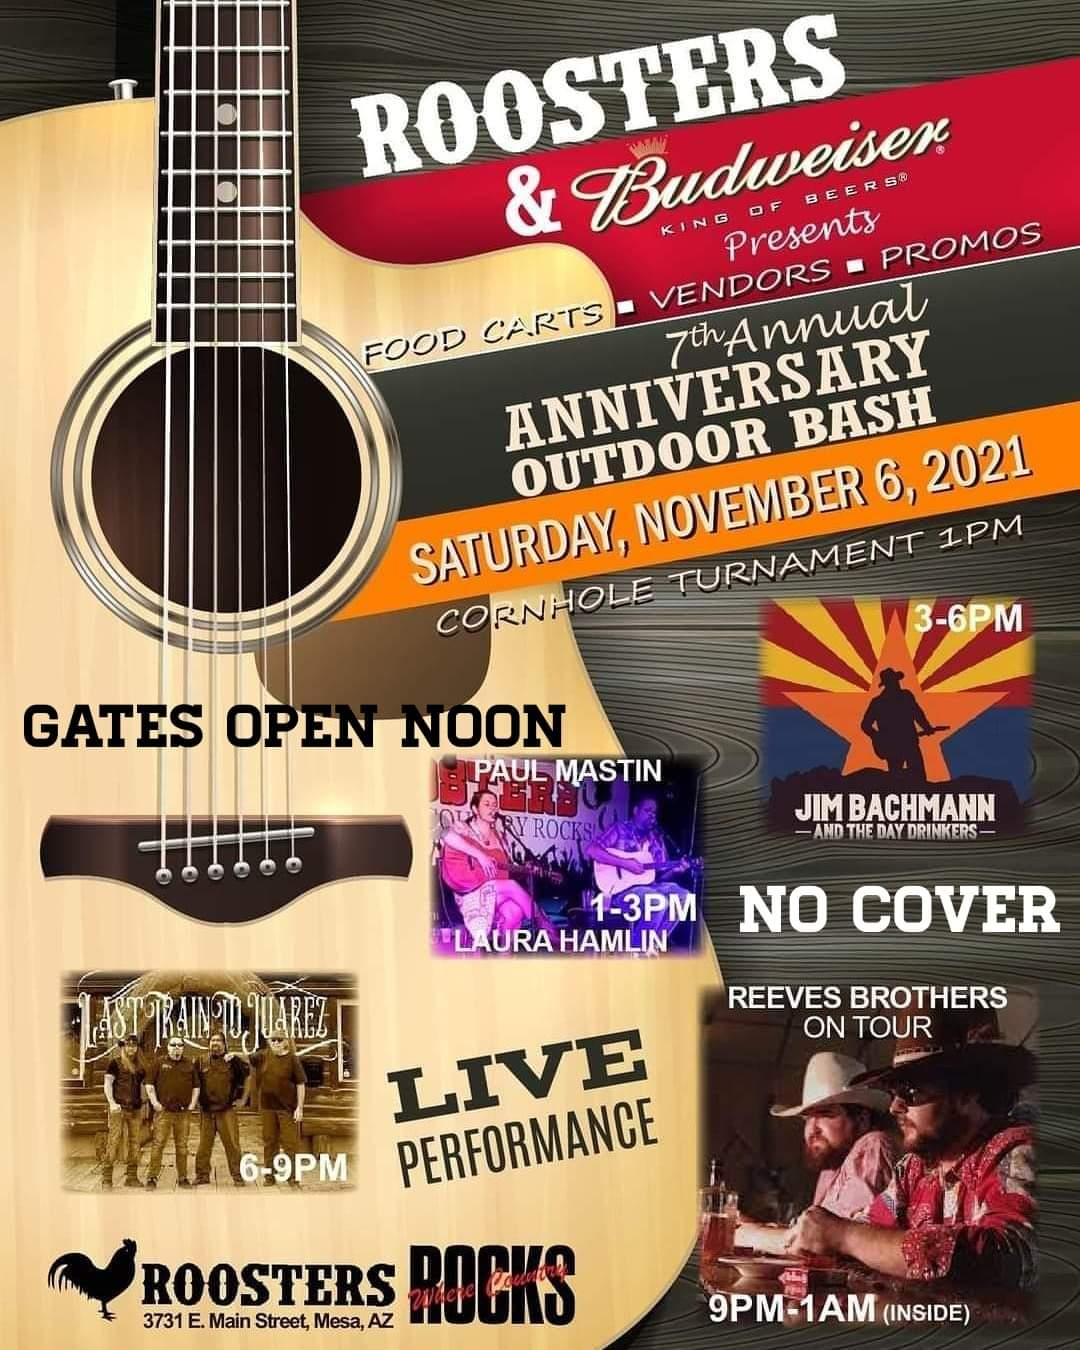 7th Annual Anniversary Outdoor Bash 4 Live Performances